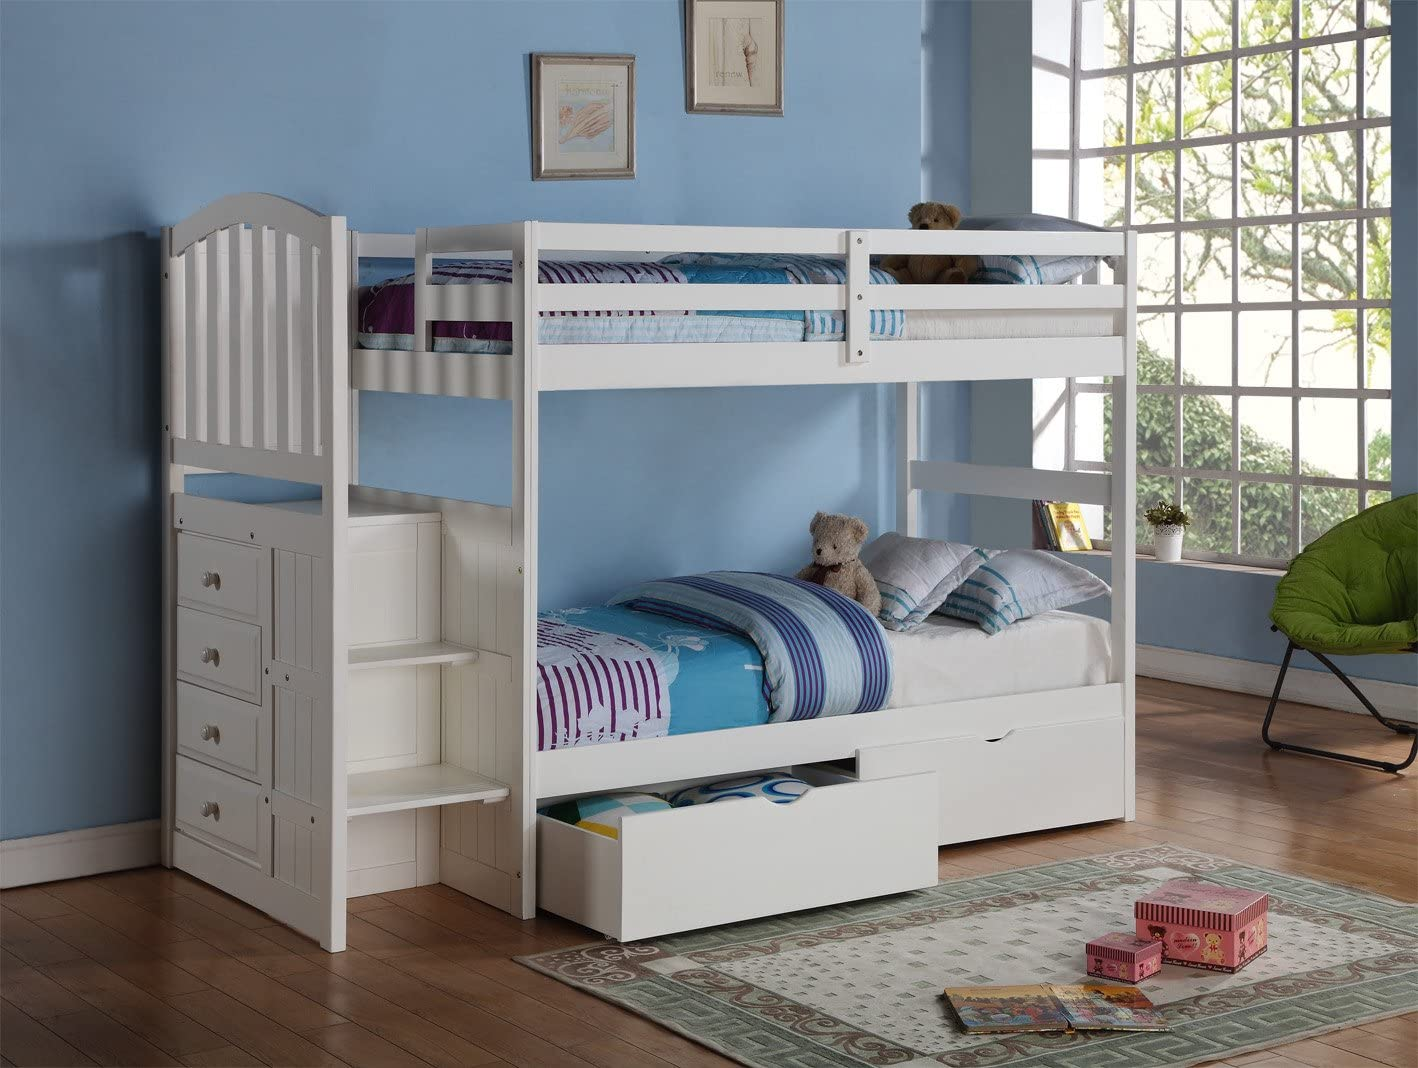 Donco Kids Arch Mission Stairway Bunk Bed White/Twin/Twin/W/Dual UNDERBED Drawer